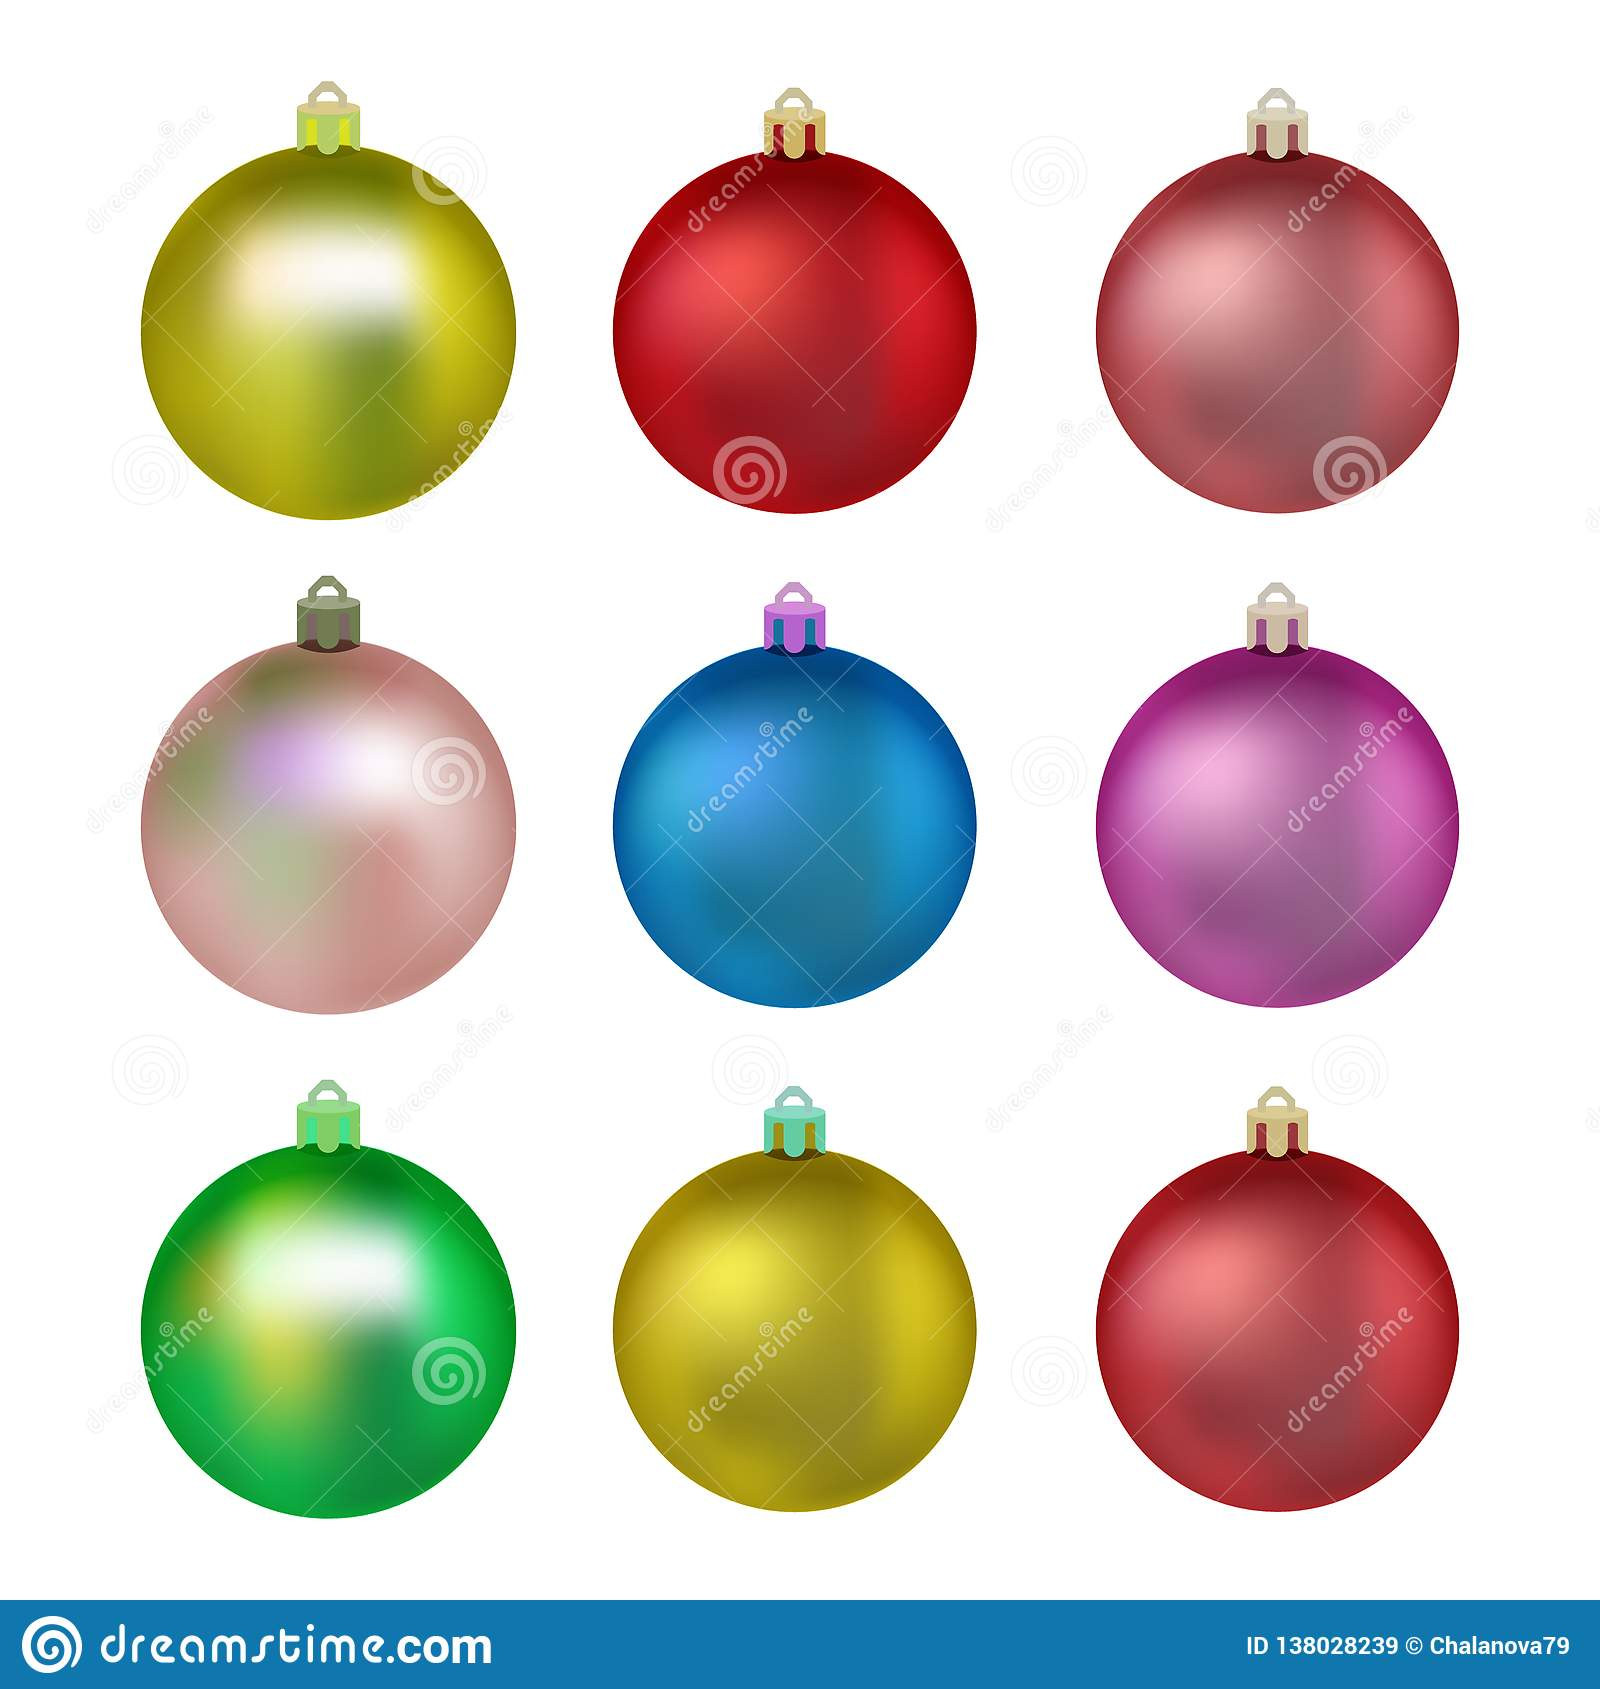 Colorful Christmas Tree Vector.Set Of Colorful Christmas Balls Balls For Christmas Tree